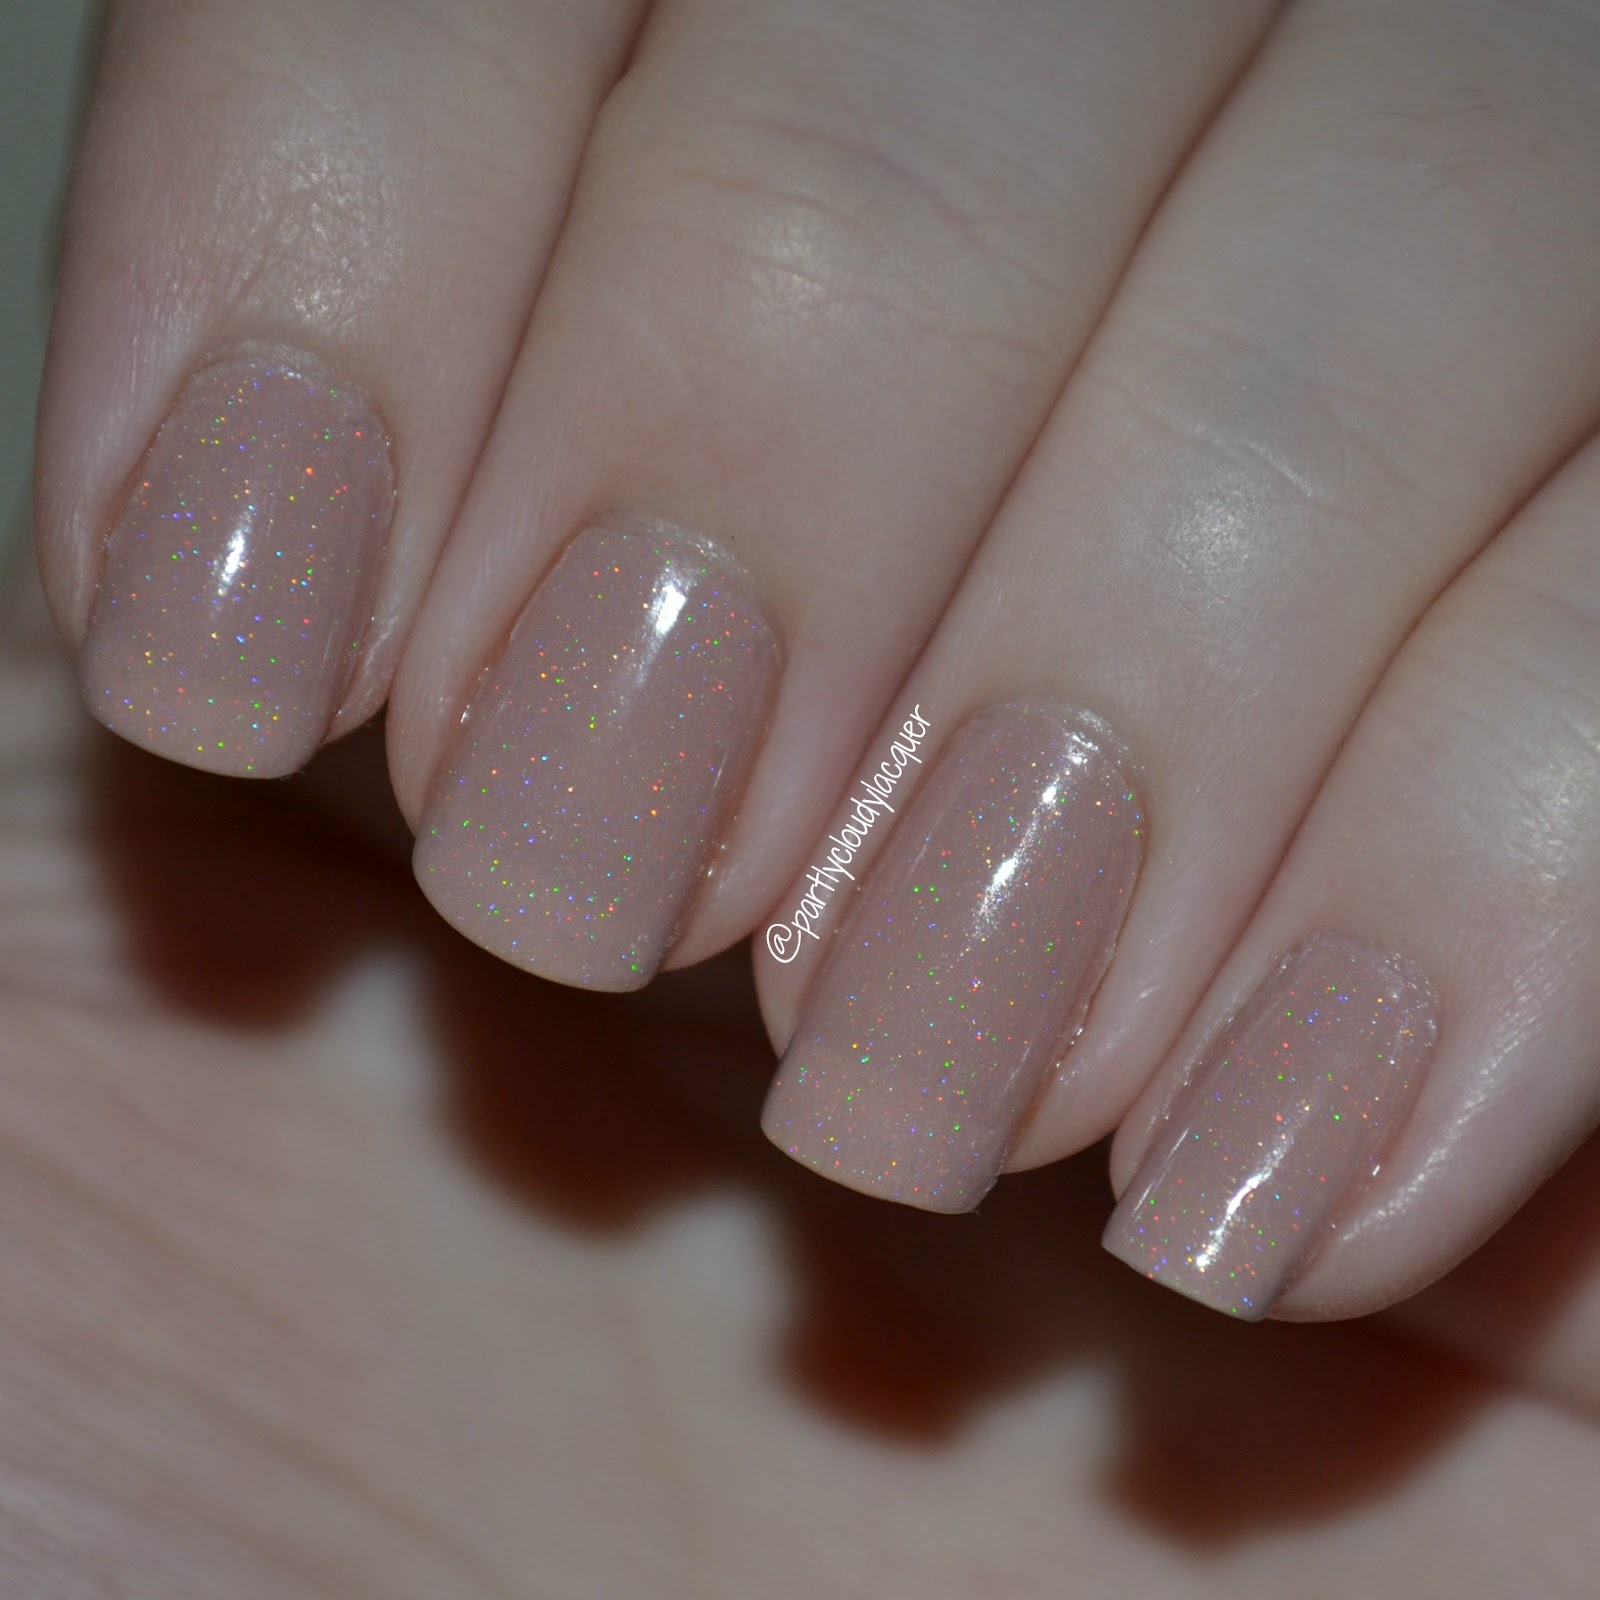 Julep Carrie Ann | Partly Cloudy With a Chance of Lacquer